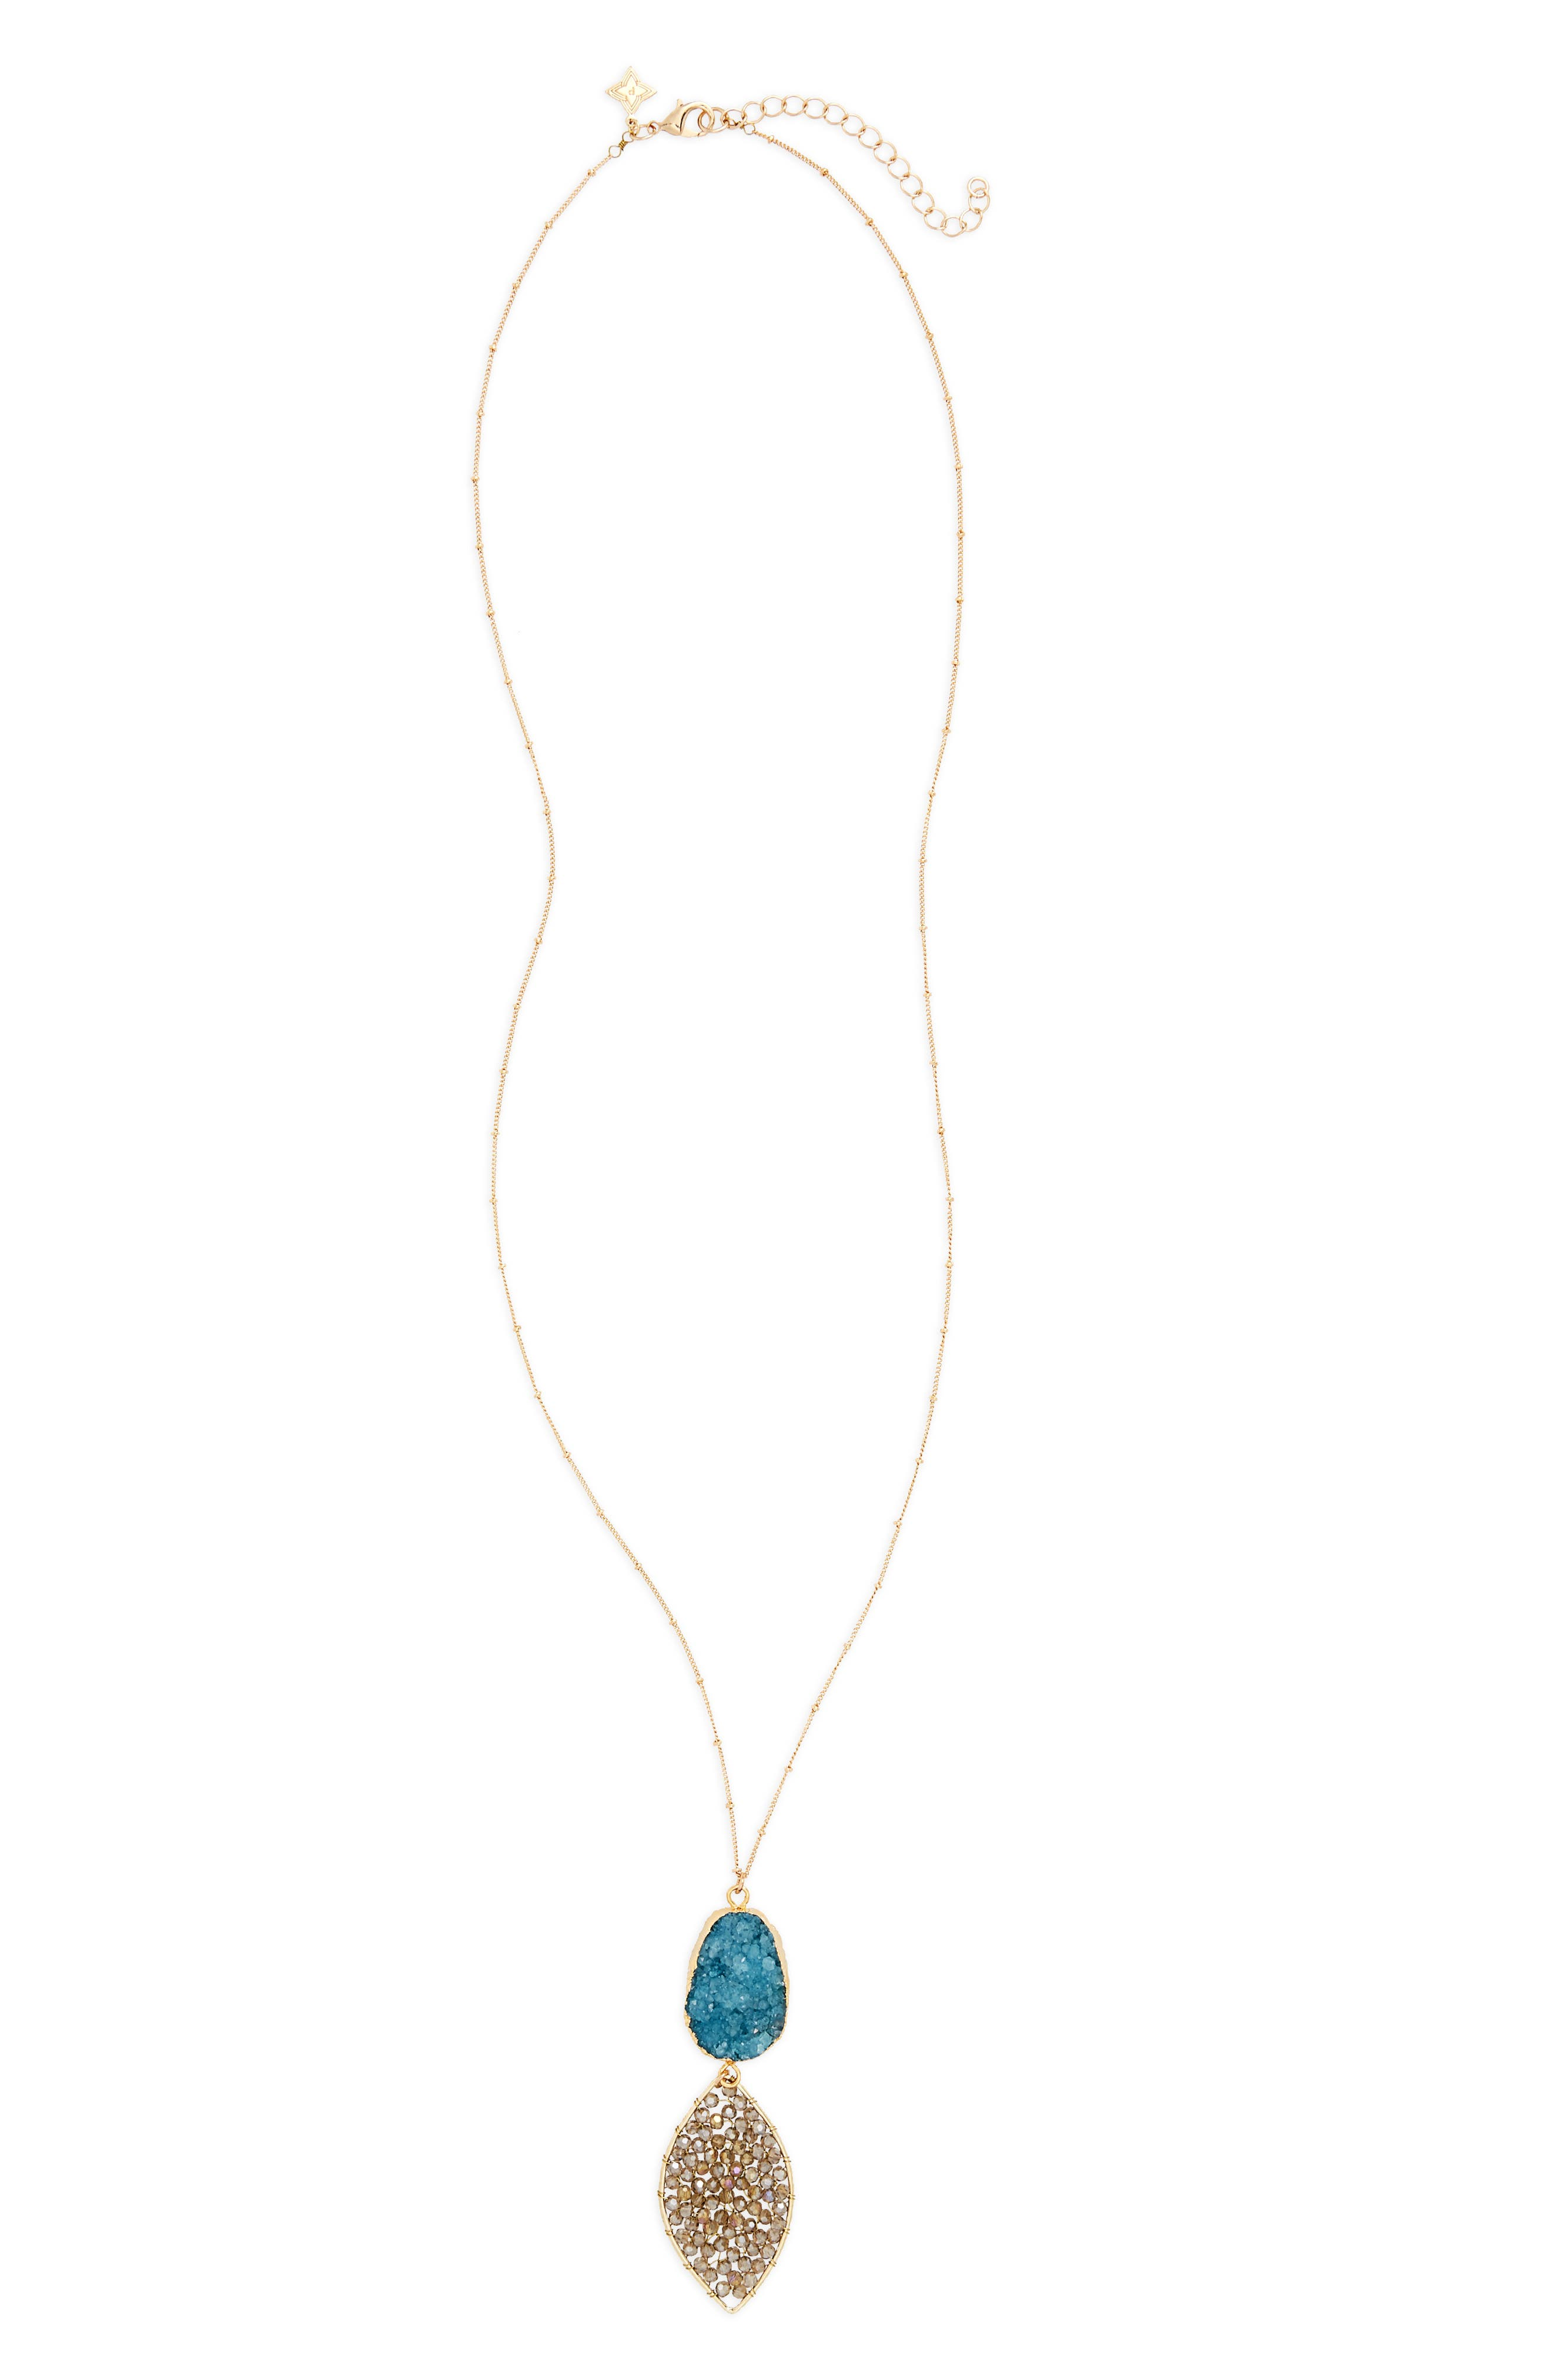 Stone & Beaded Crystal Pendant Necklace,                             Main thumbnail 1, color,                             440